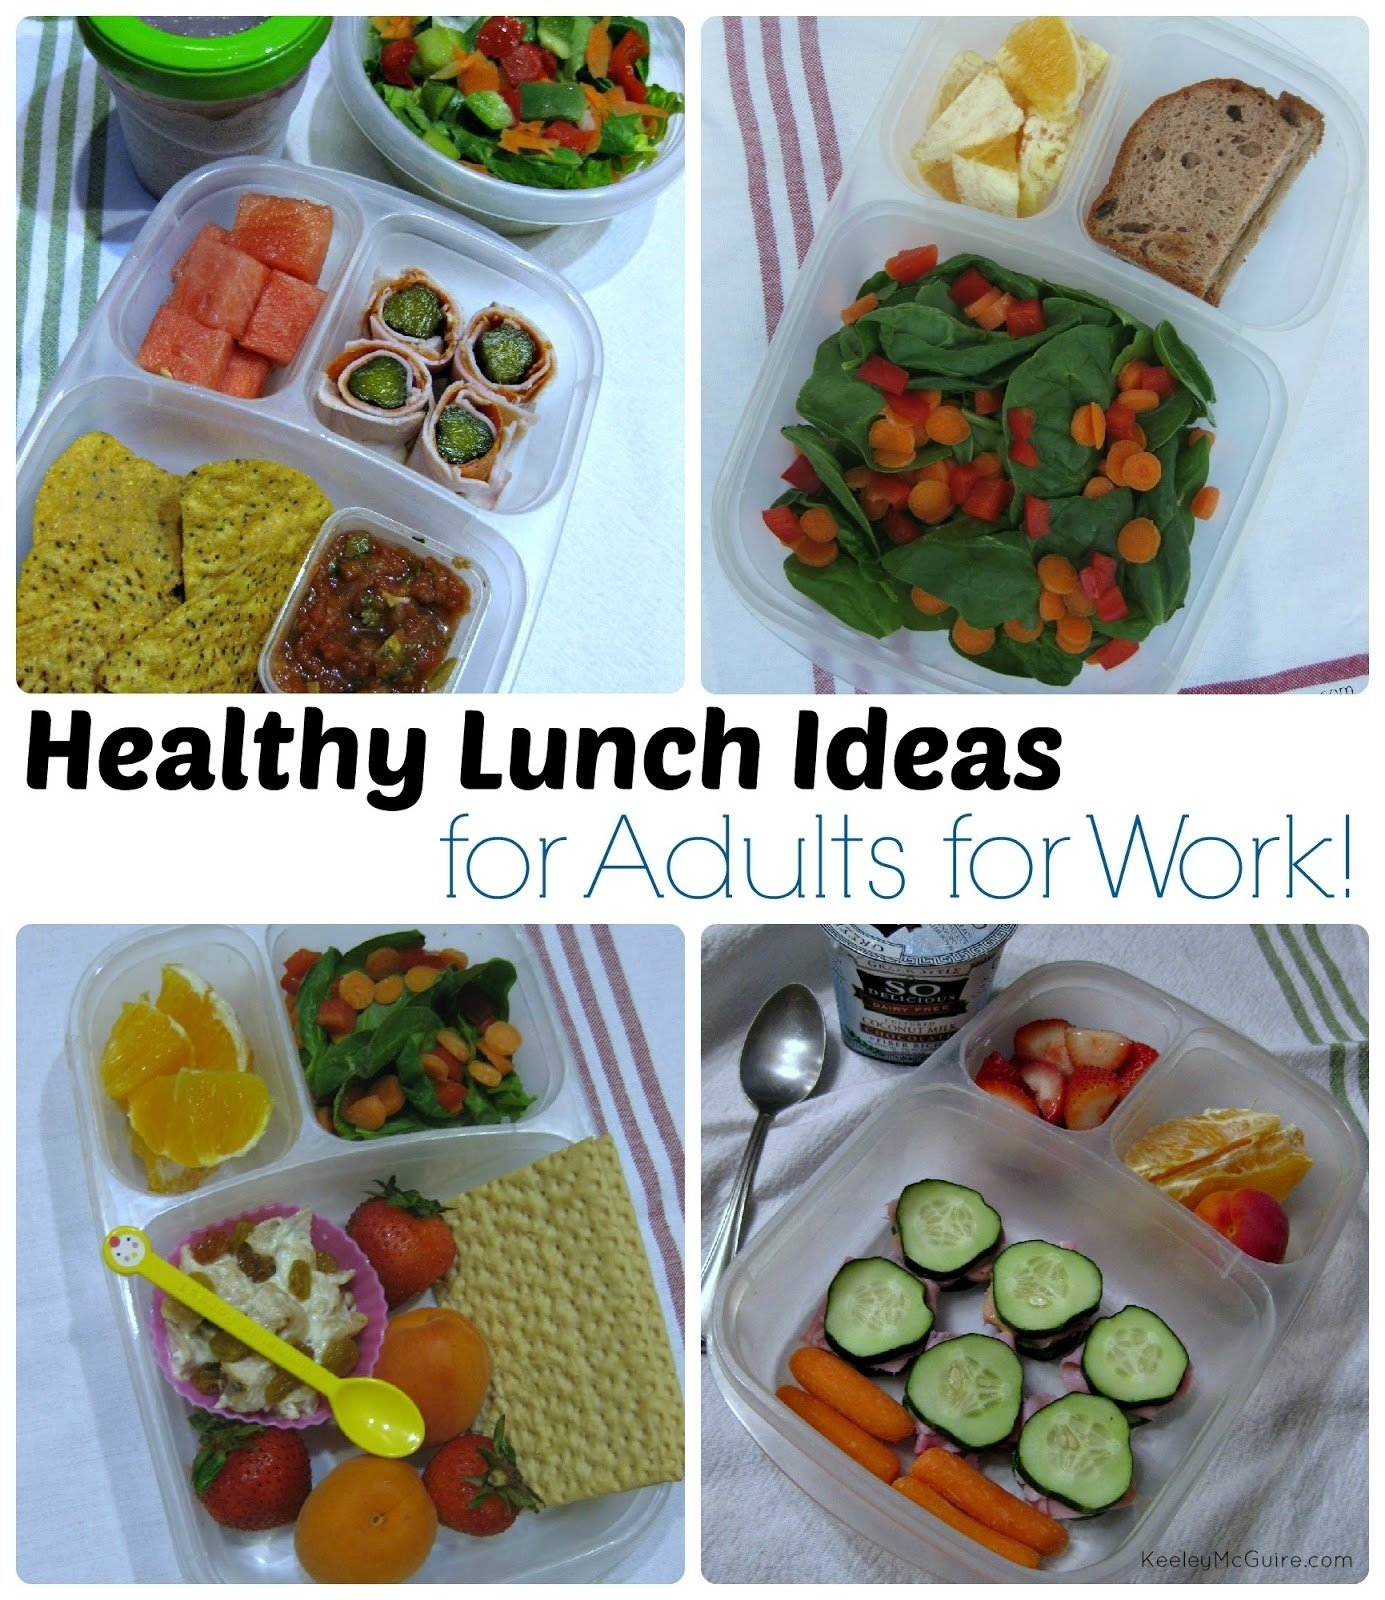 10 Stylish Simple Lunch Ideas For Work Gluten Free Allergy Friendly Made Easy Healthy Adult